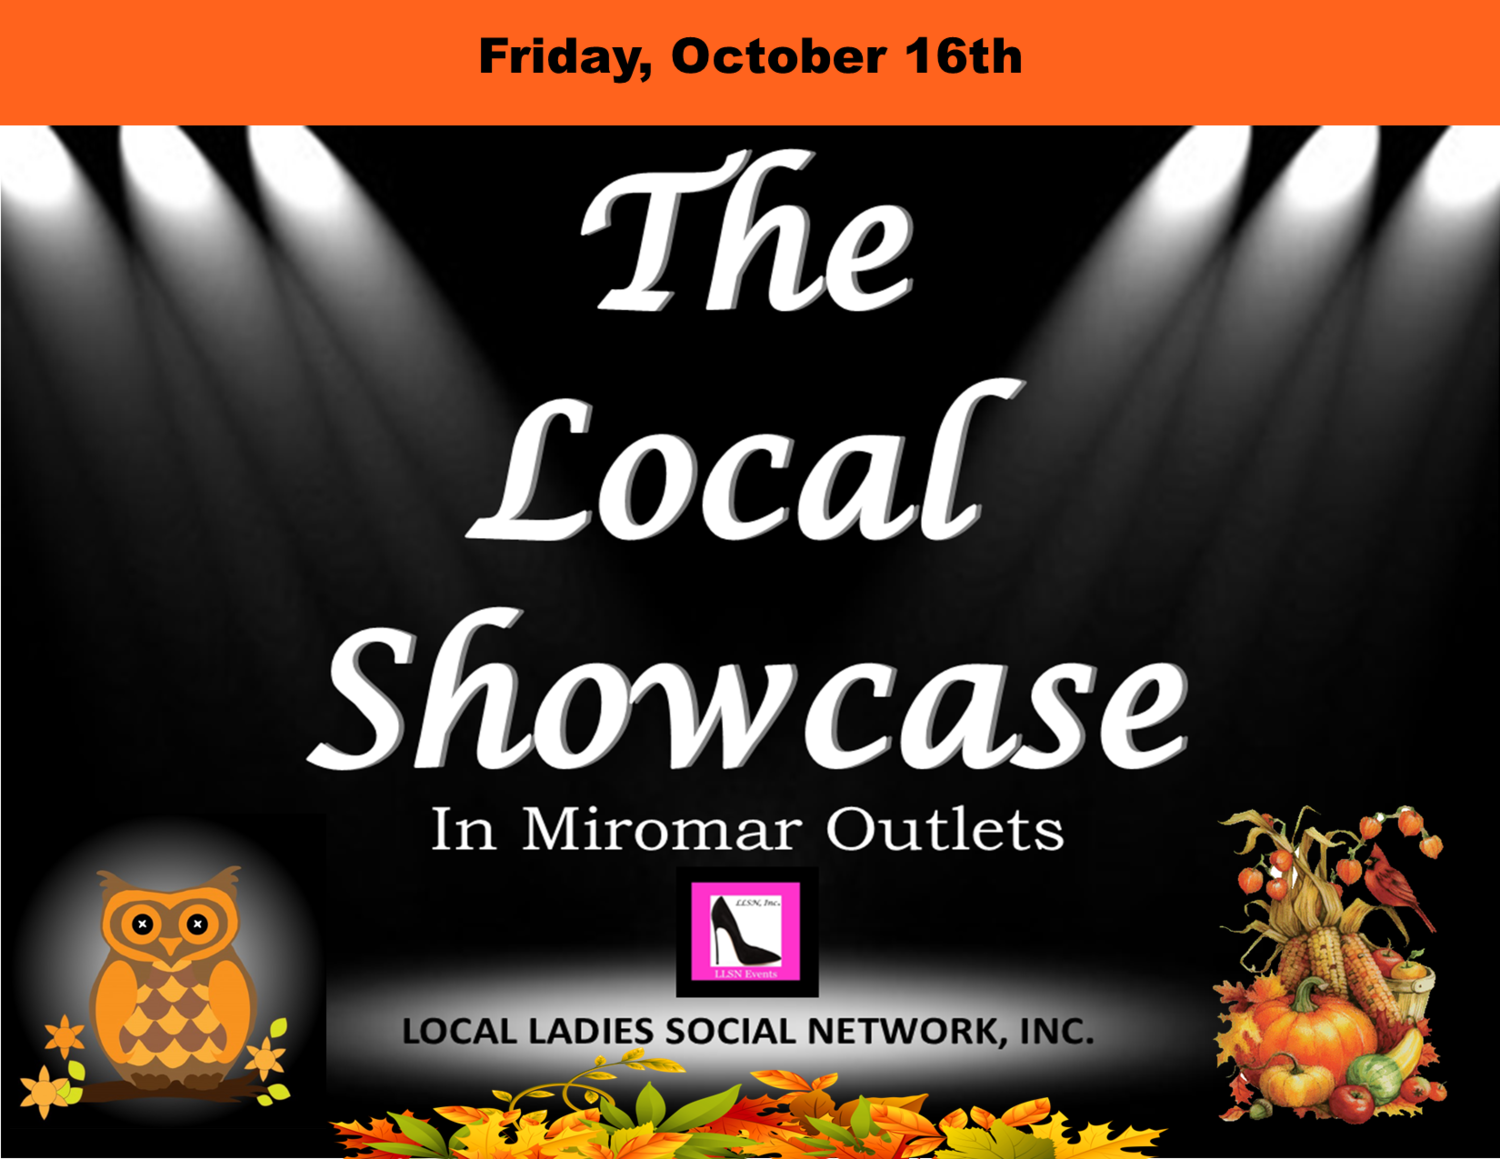 Friday, October 16th 11am-7pm